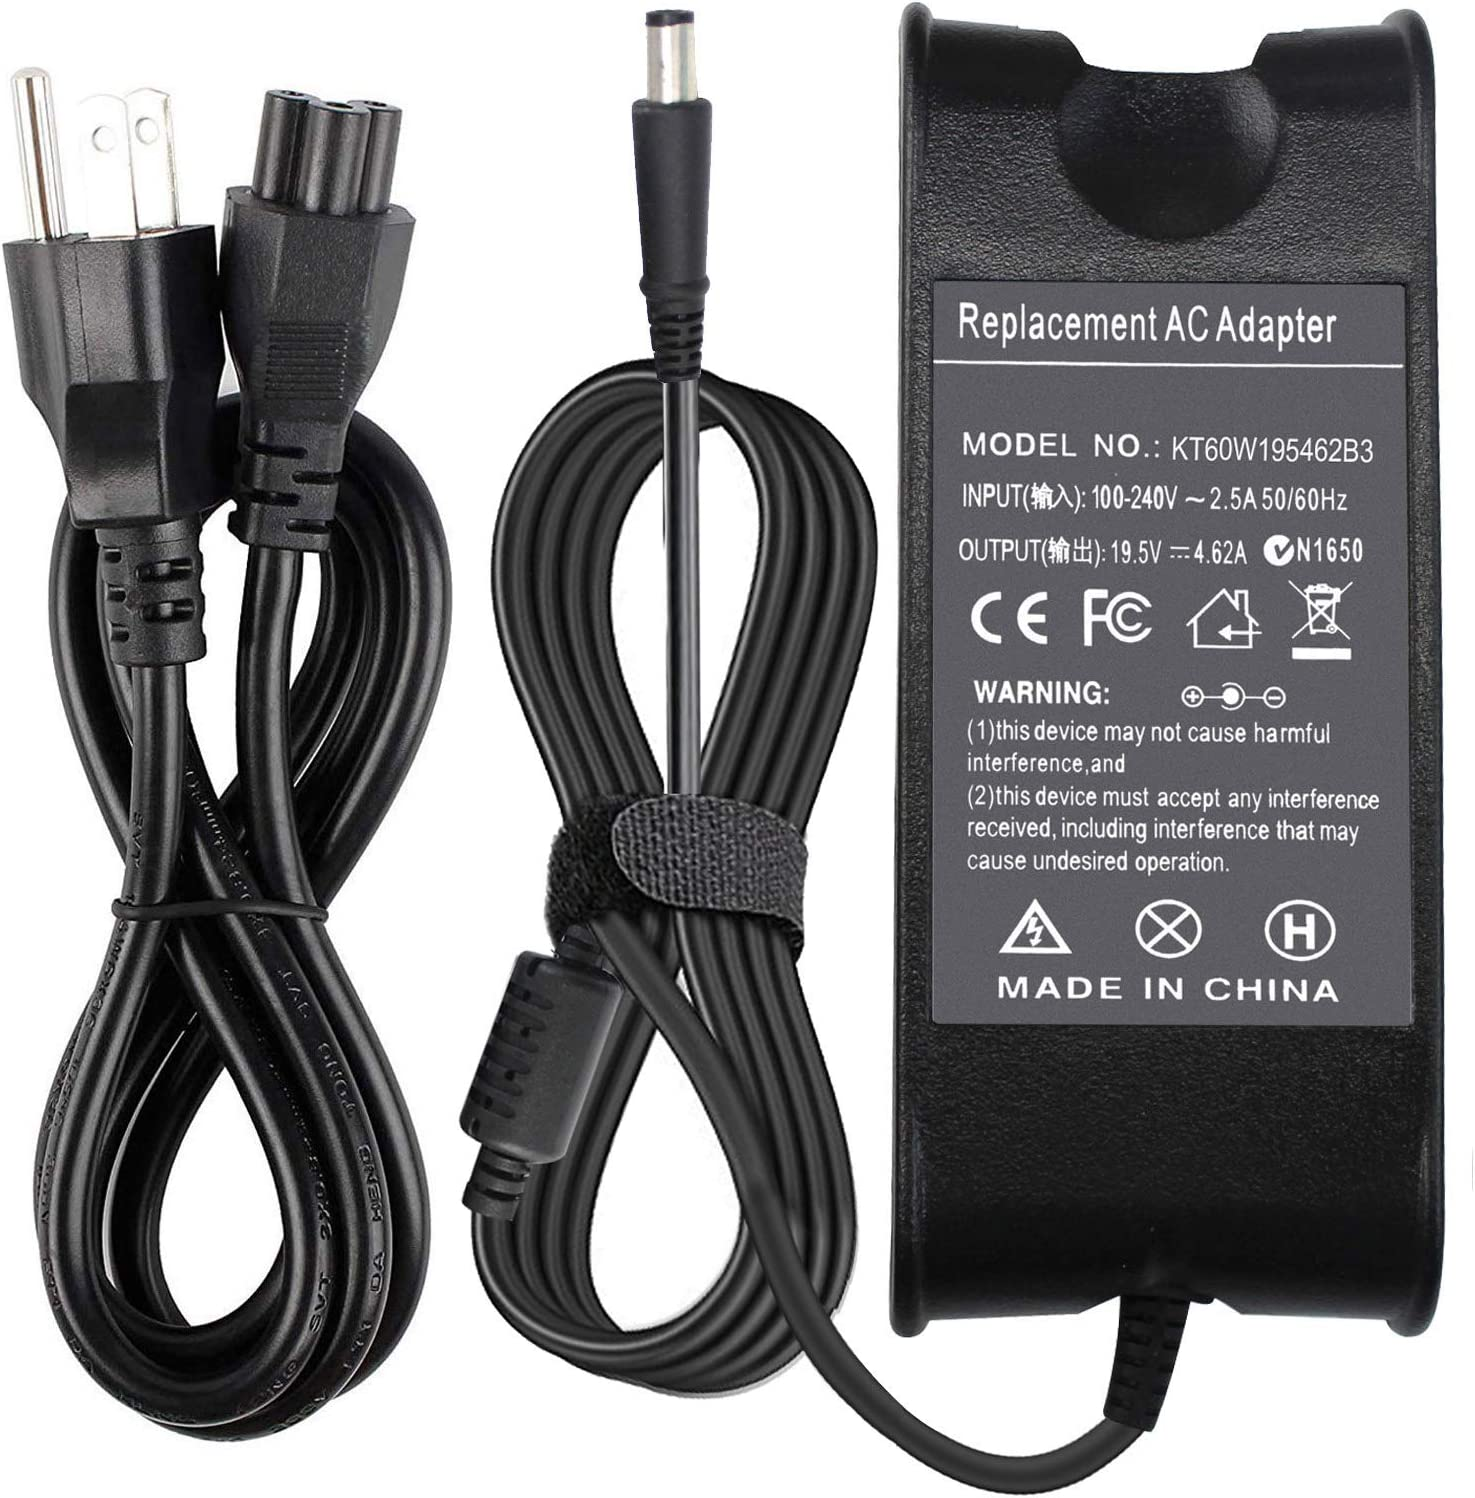 Yongerwy PA-10 PA-12 AC Adapter Charger for Dell Latitude 14Z 15R 17R E5250 E5450 E5430 E5440 E6430 E6530 E6230 E7440 6400 8500 N4010 Fits:PA-3E PA-1650-05D2 LA65NS0-00